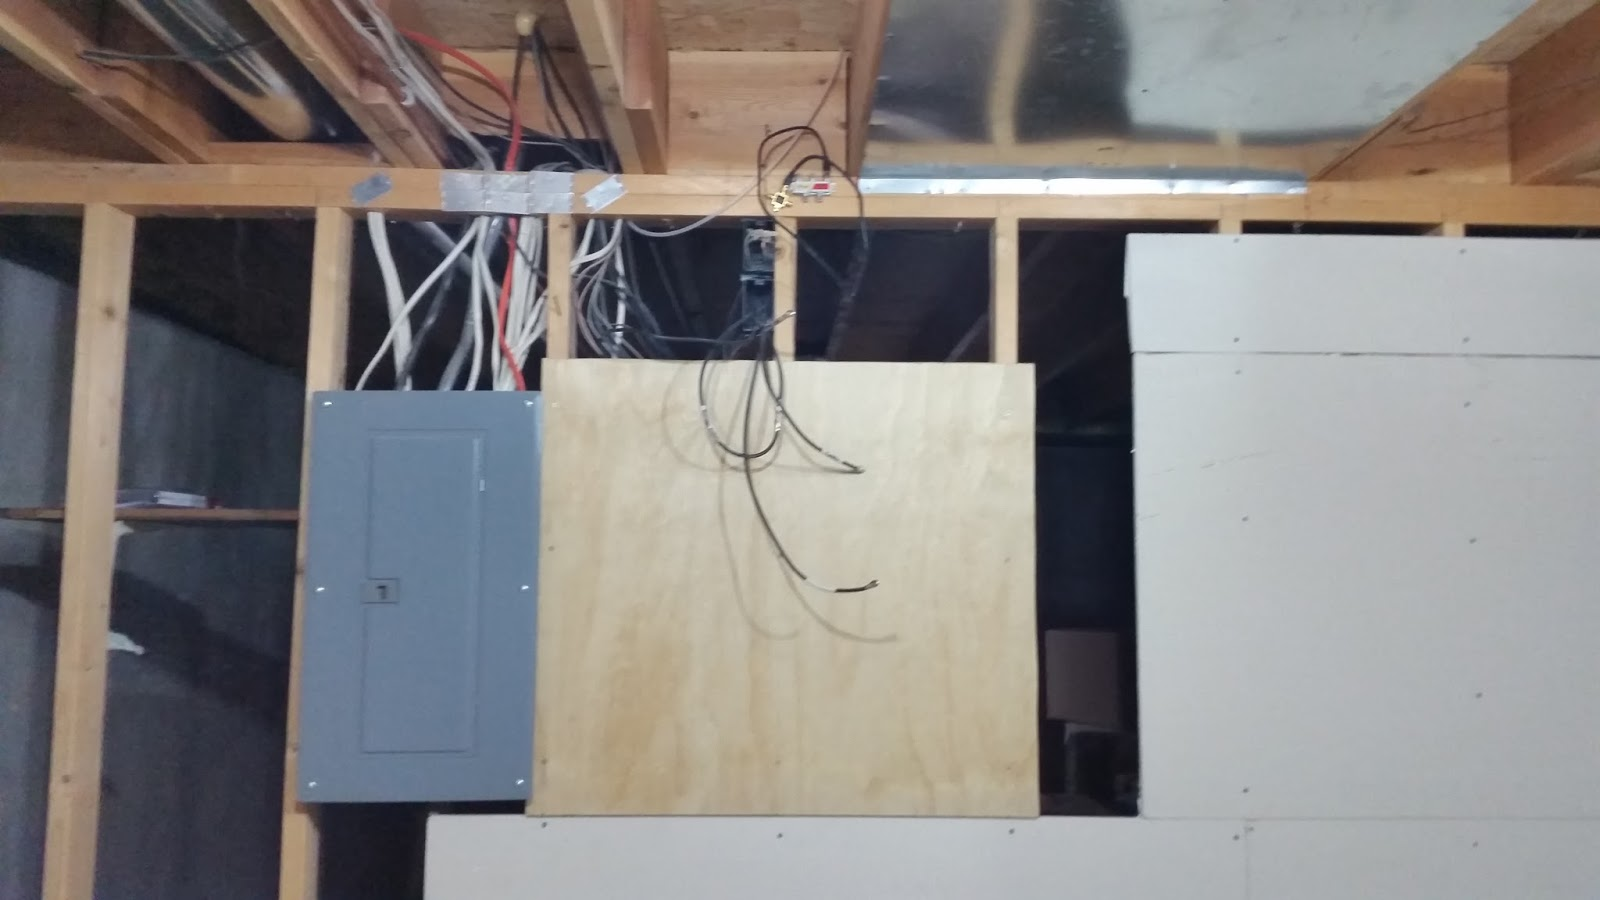 Installing residential network wiring